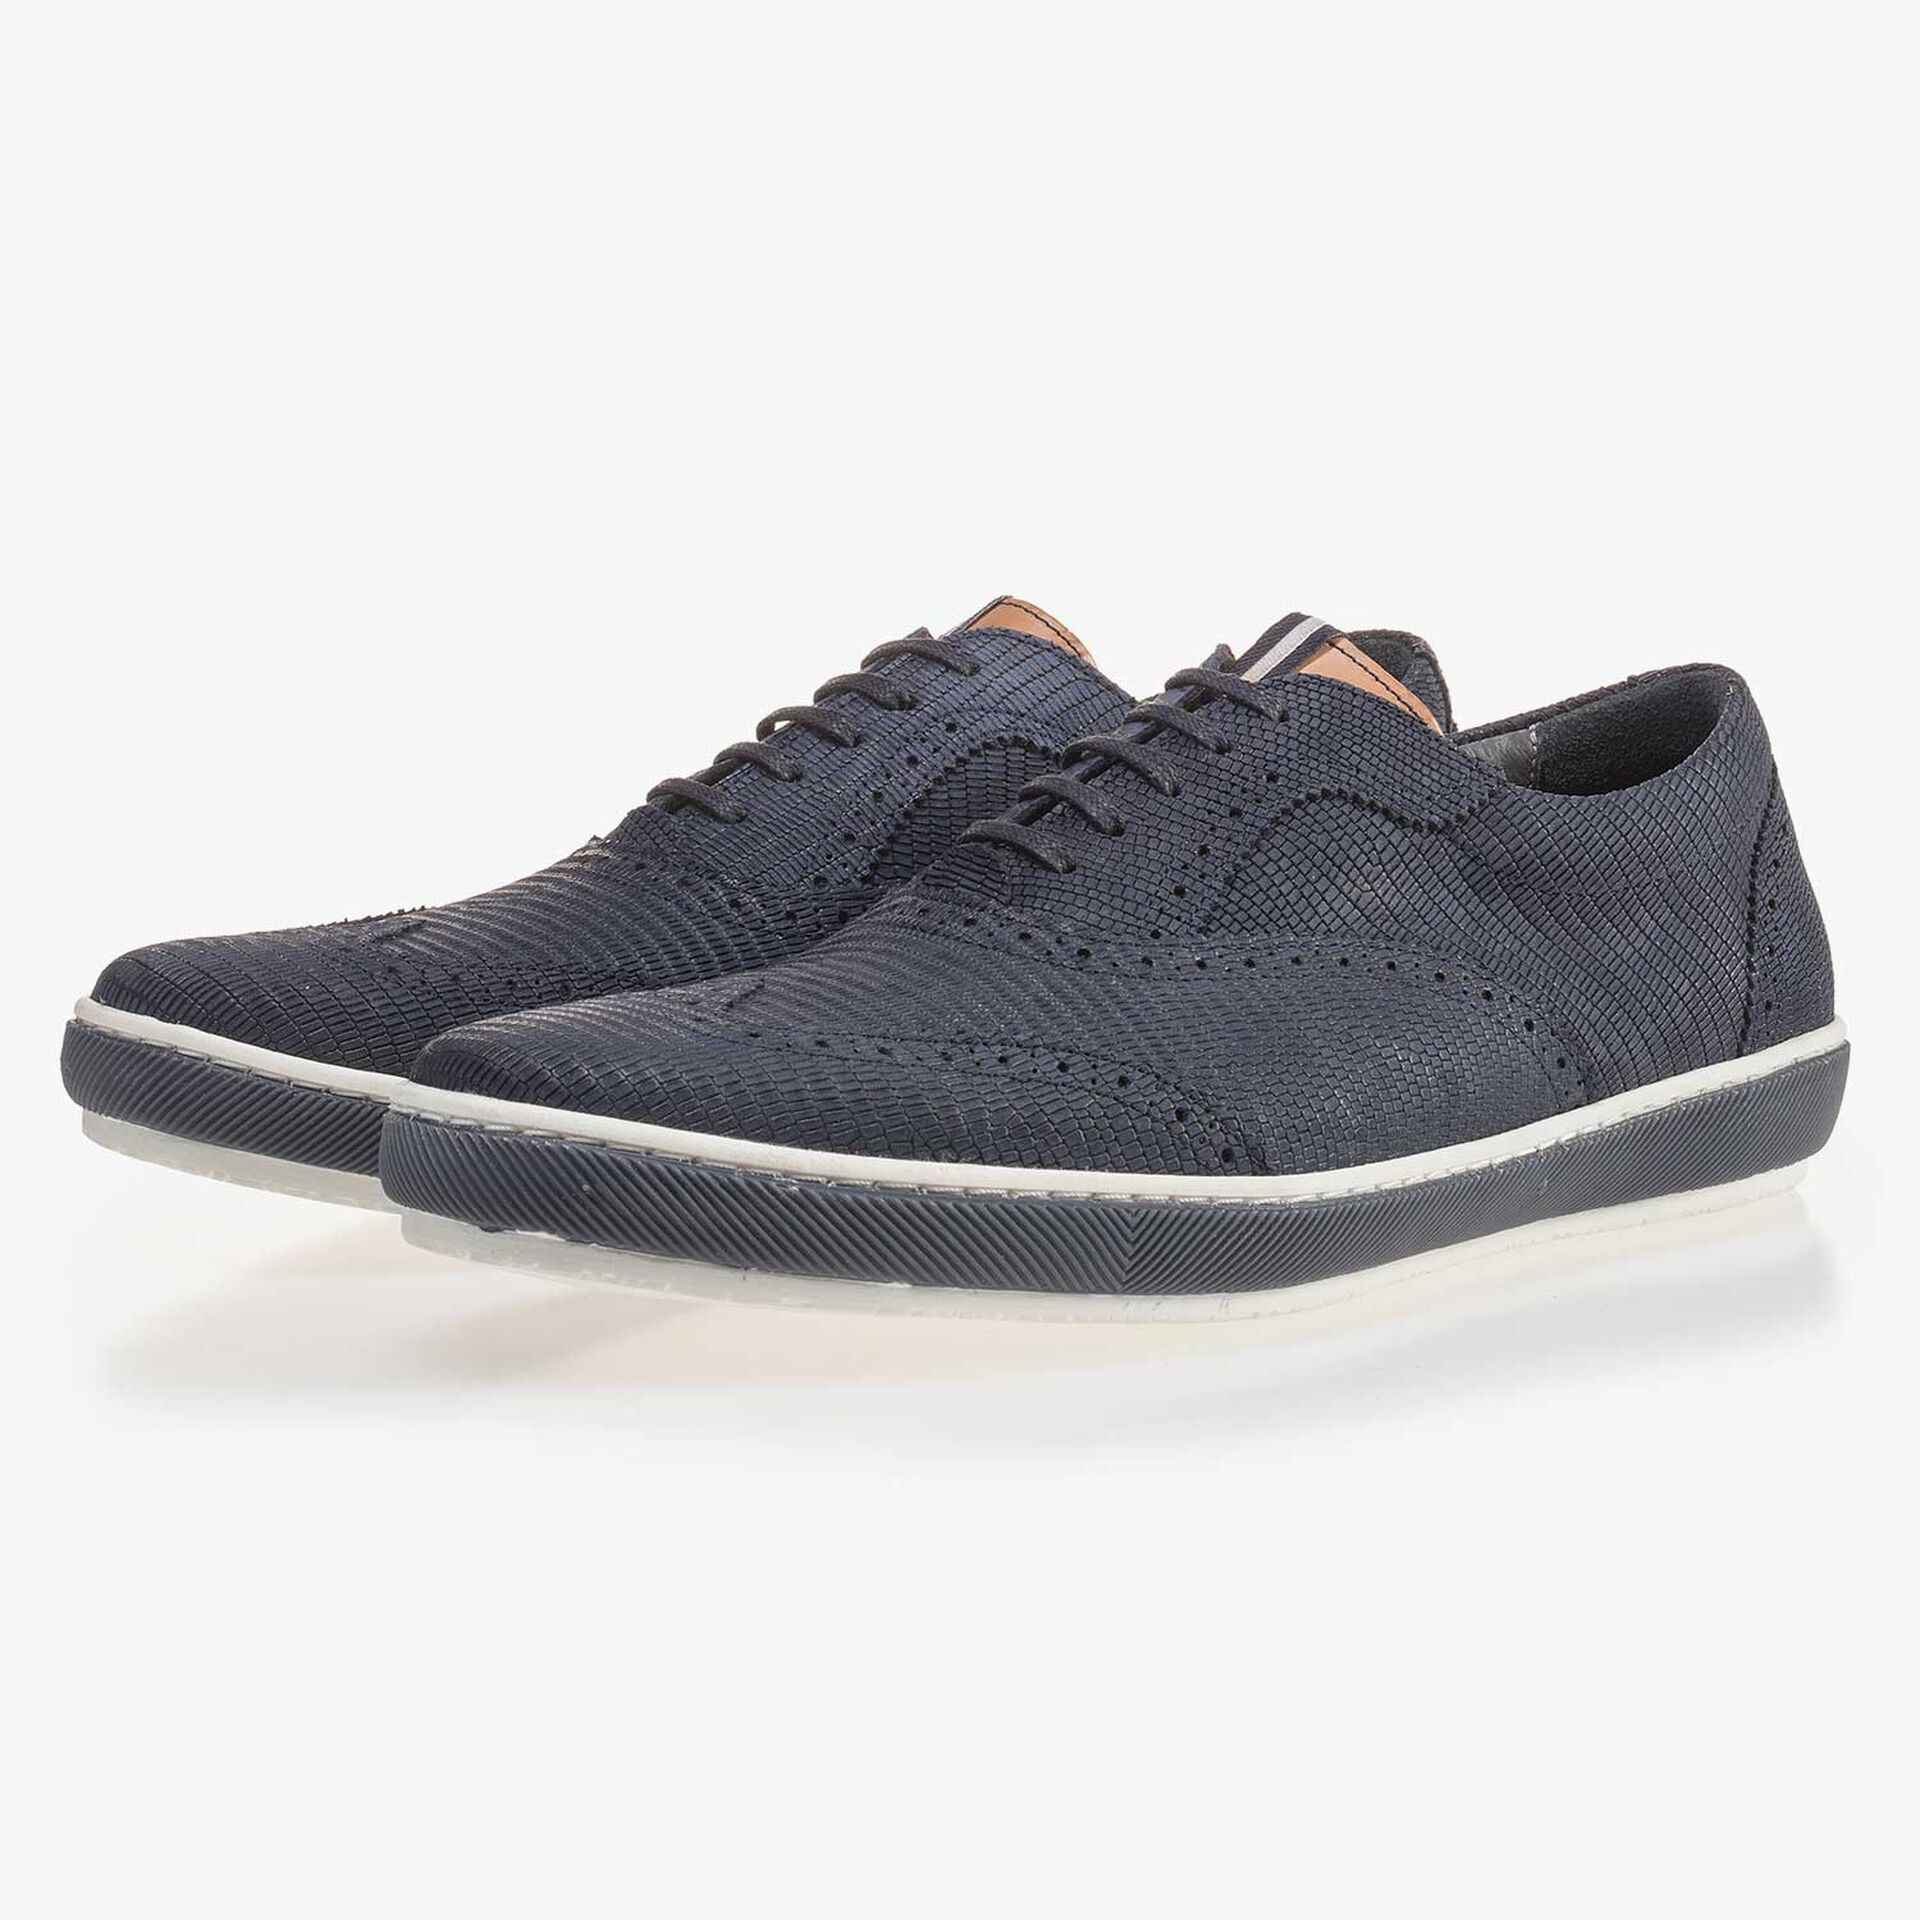 Blue brogue nubuck leather sneaker